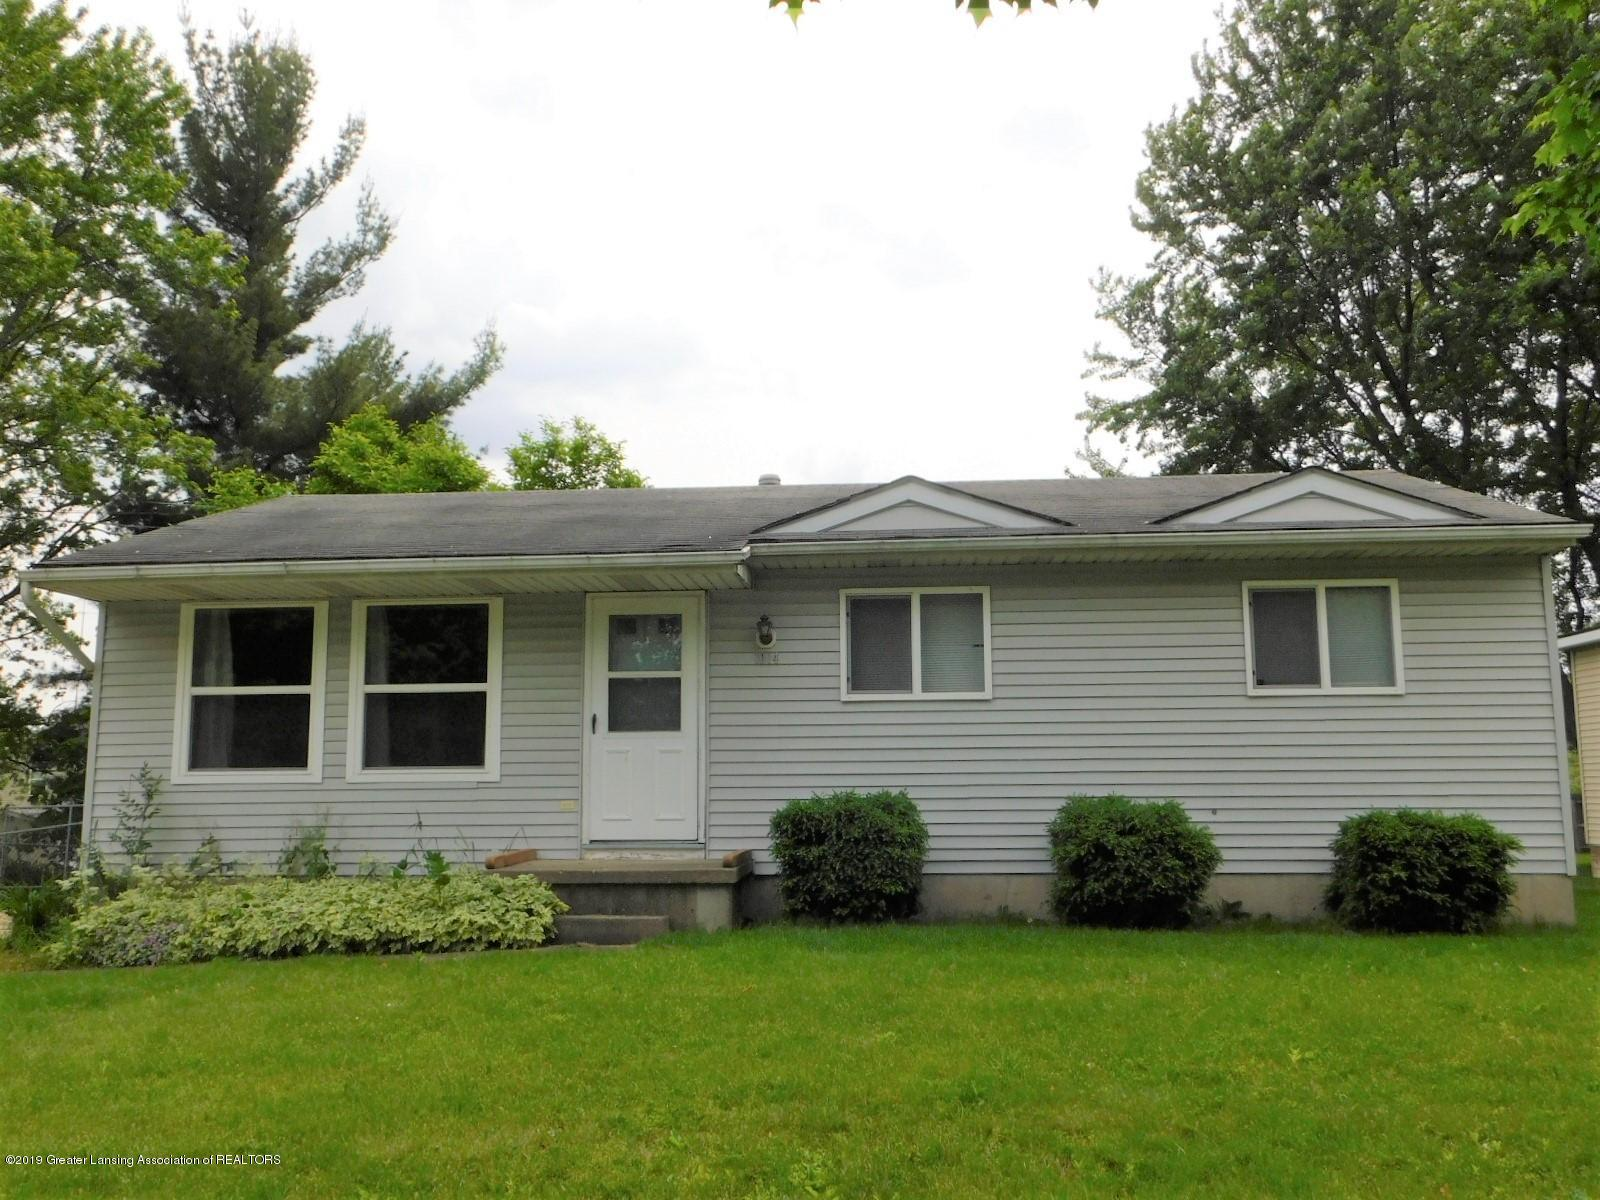 1014 Eugenia Dr - exterior front - 1